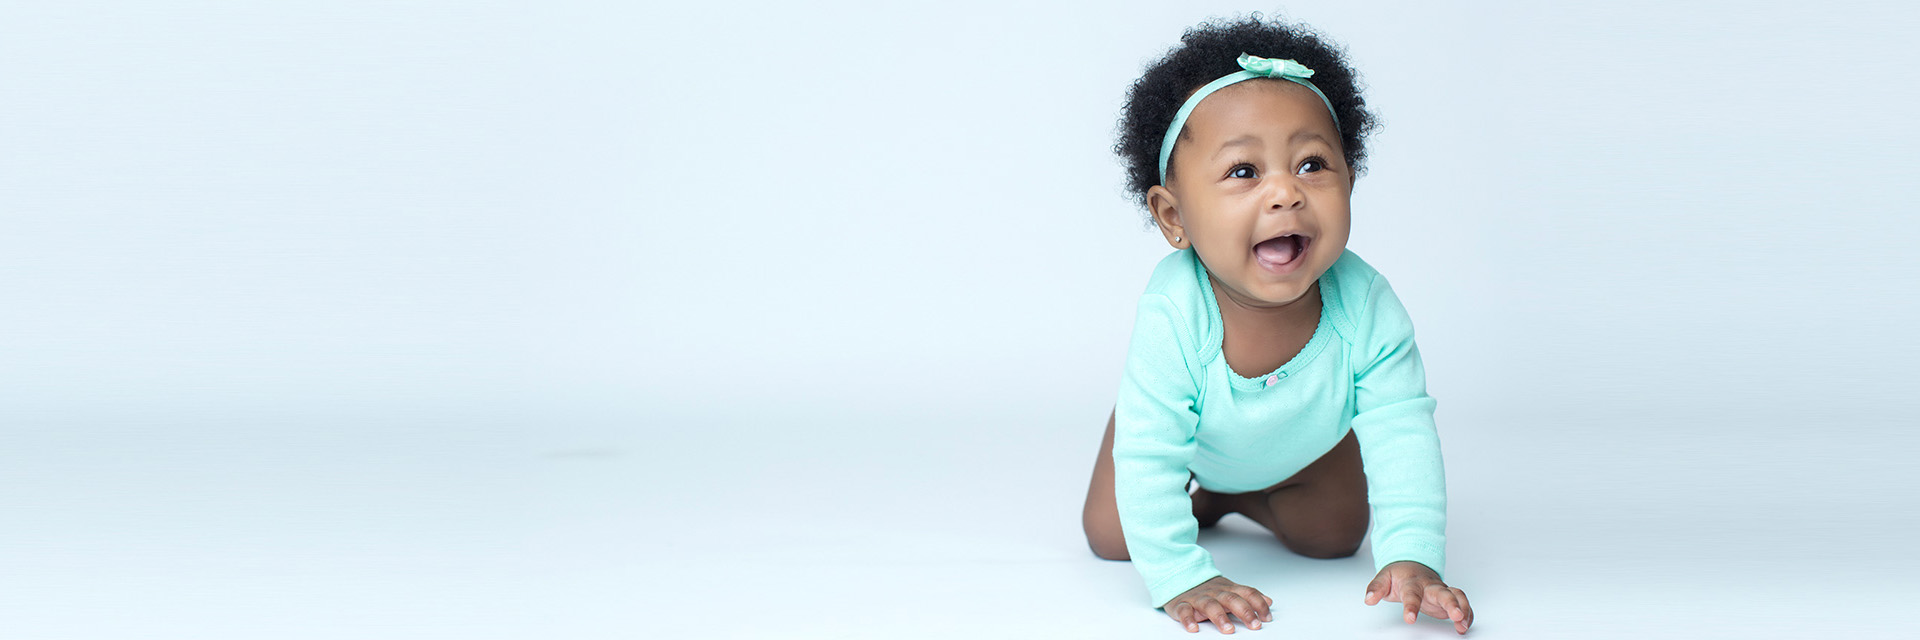 African American Baby in Teal Crawling on Floor